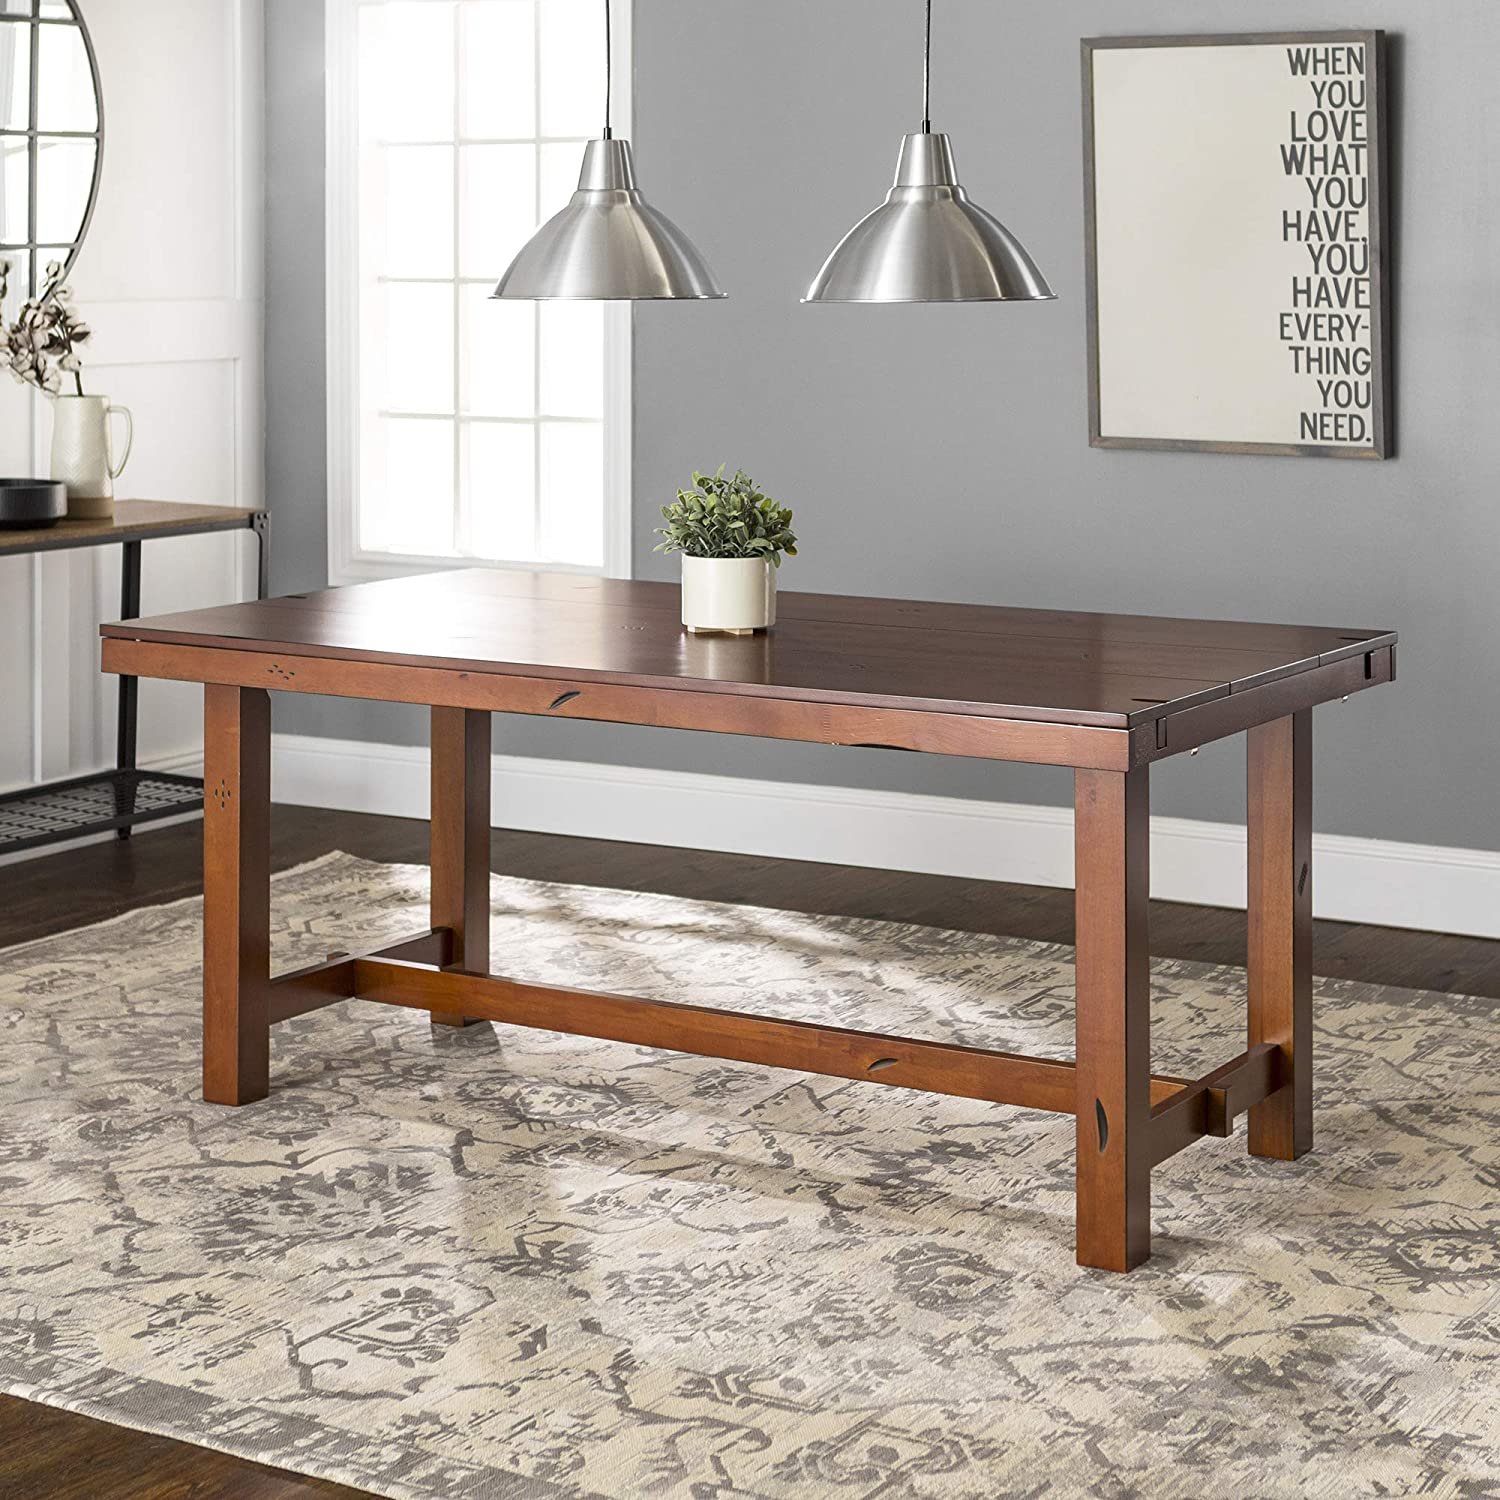 farmhouse-extendable-dining-table-96-inch-tabletop-burnished-warm-finish-removable-end-leaf-design